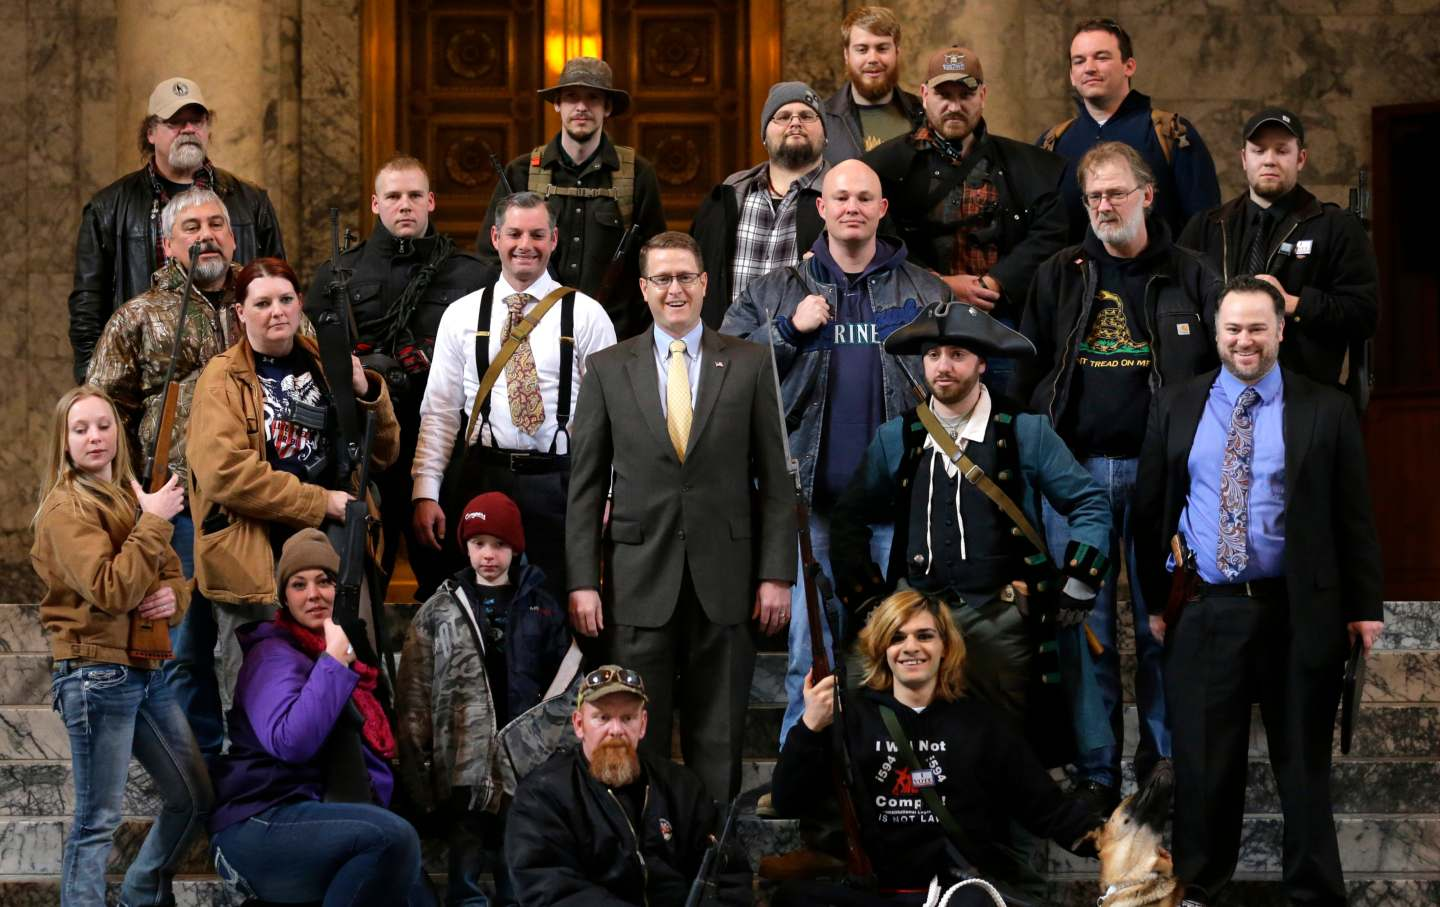 Matt Shea poses with gun-rights activists in a group photo